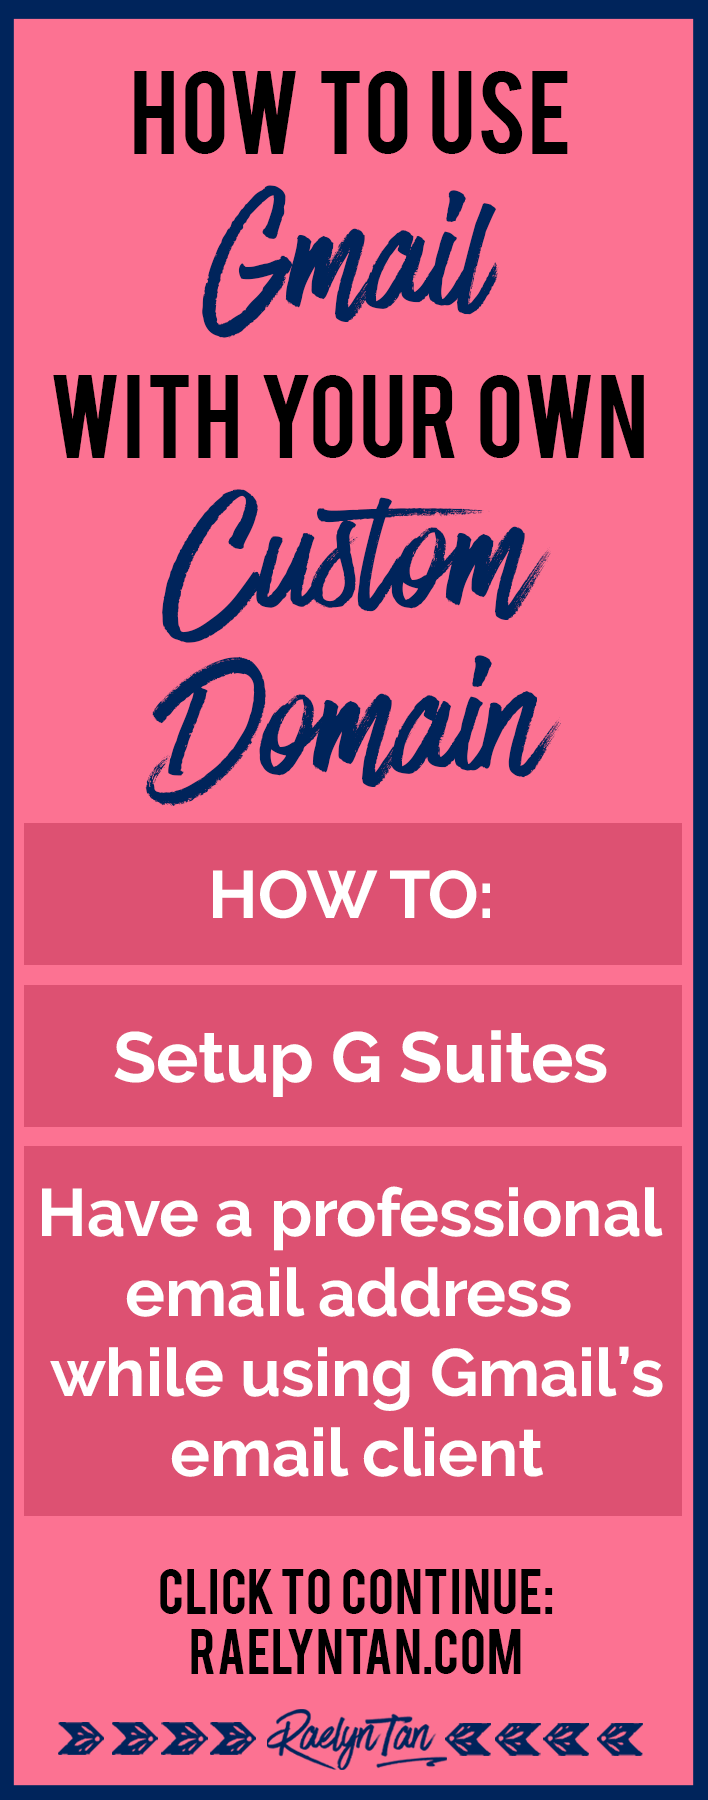 You can use Gmail as your email client instead, PLUS have a custom domain as your email address. In this tutorial, I'll teach you exactly how. (coupon code included!)